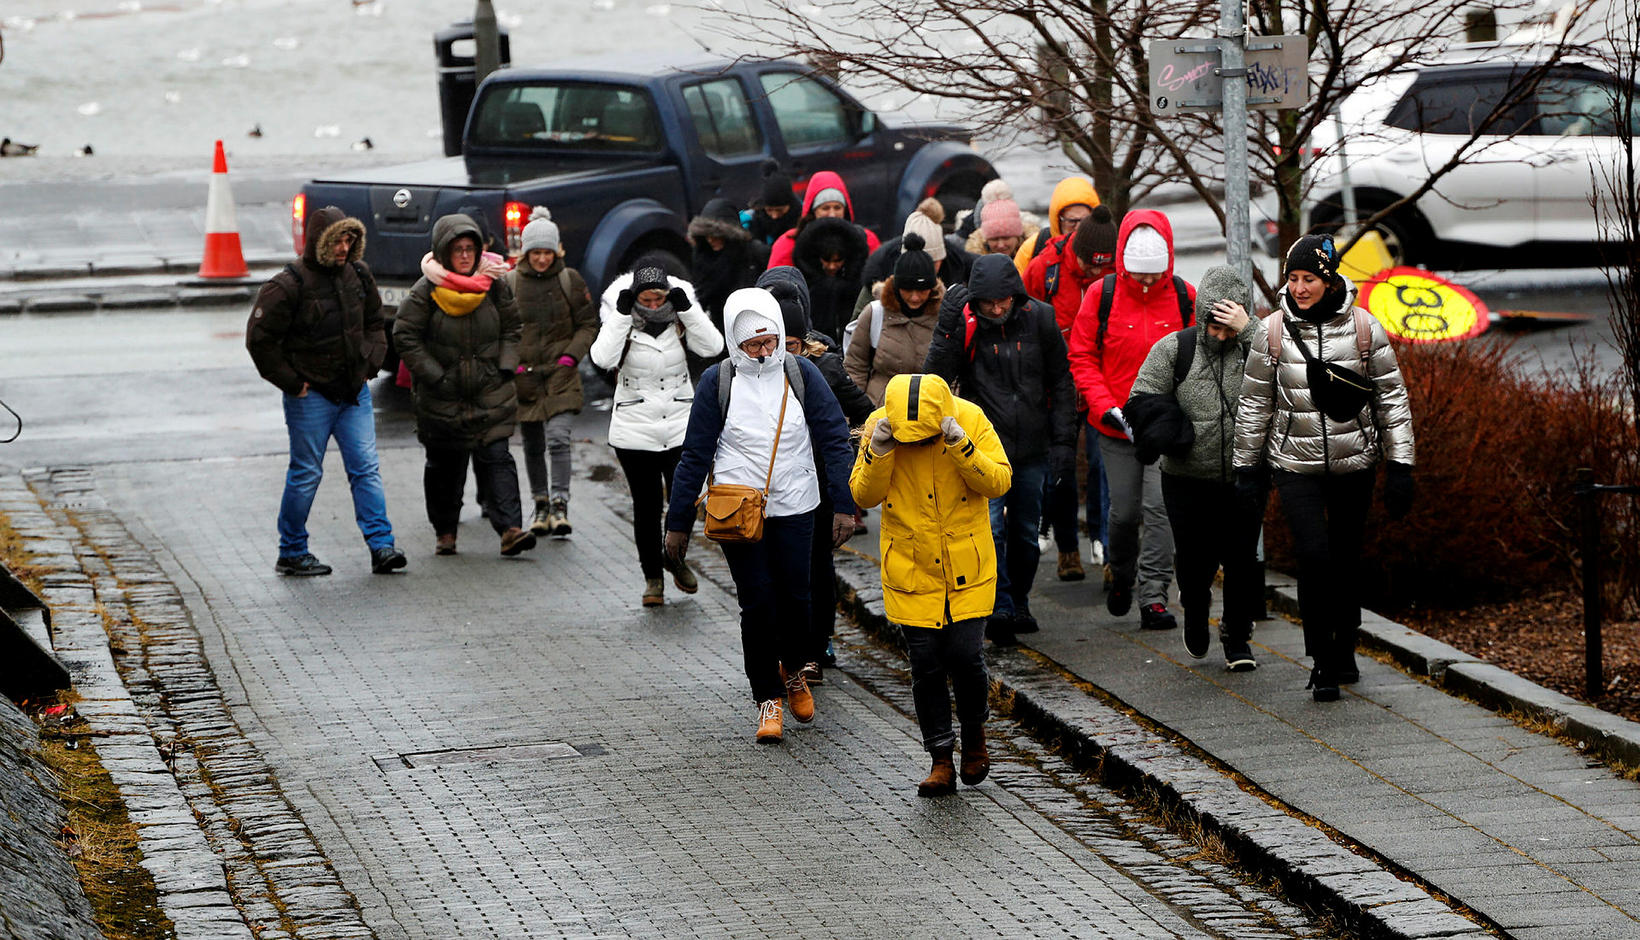 Foreign tourists in Iceland.